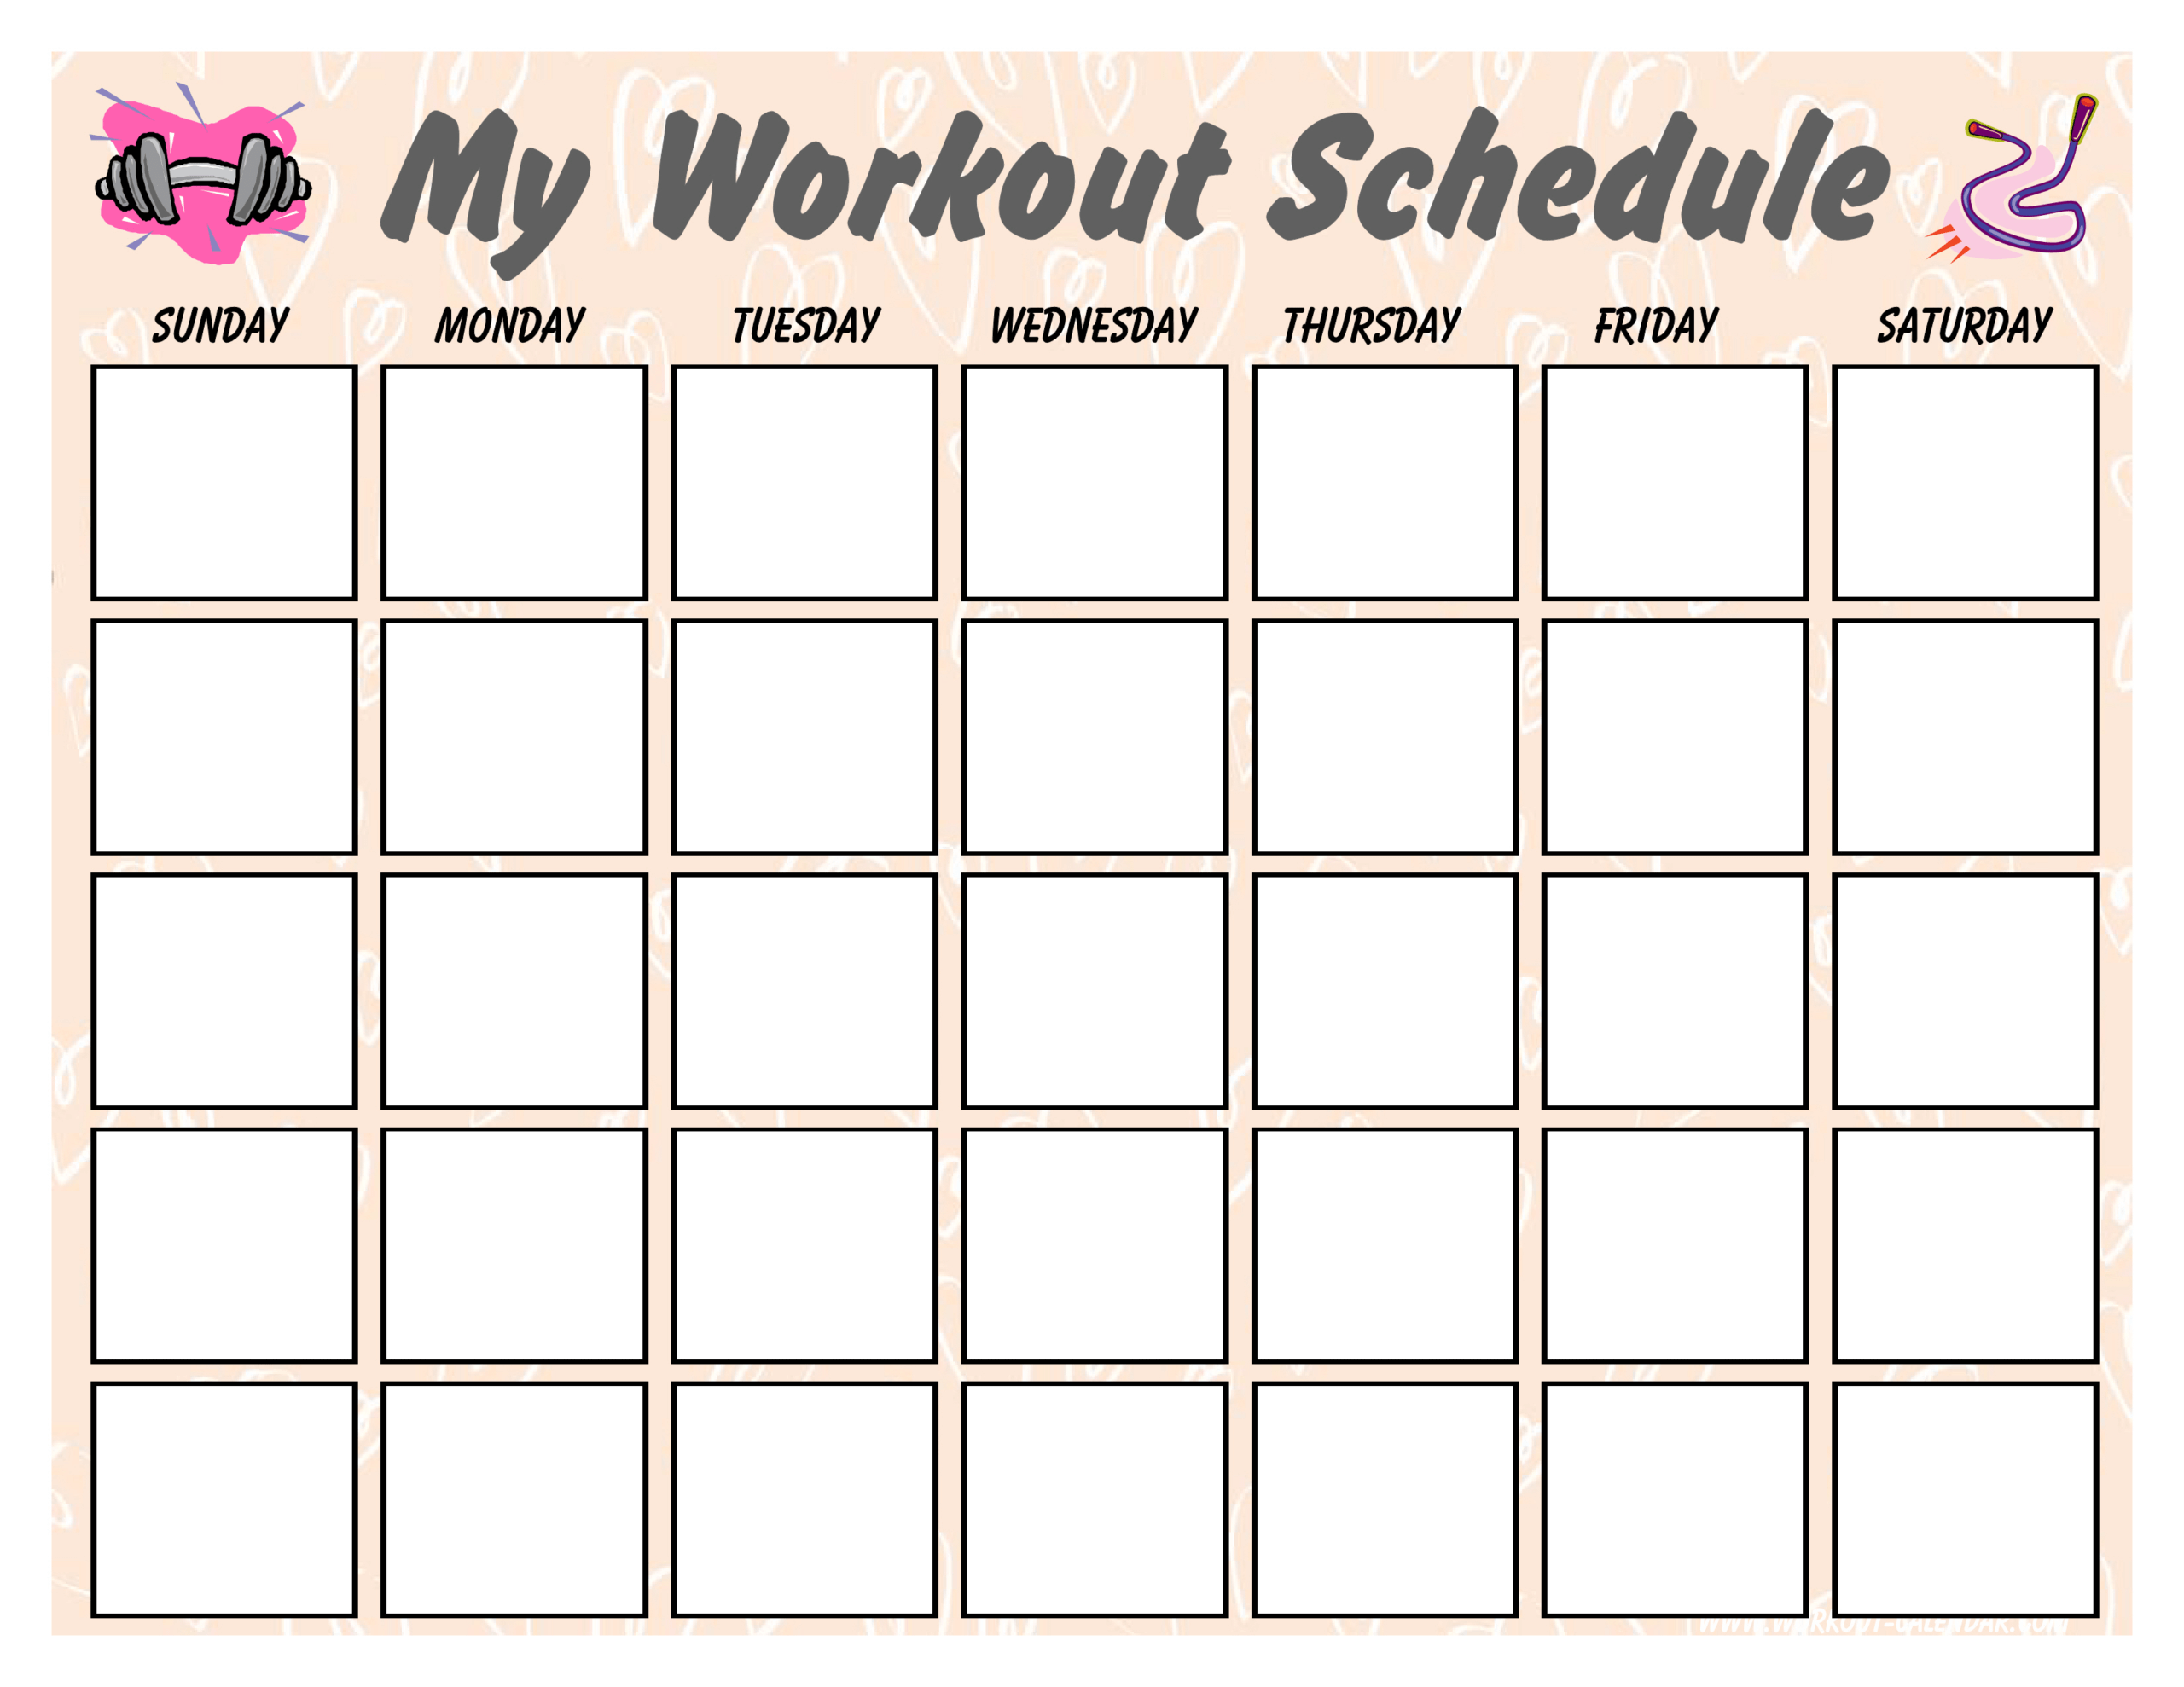 Blank Workout Schedule For Women | Templates At Regarding Blank Workout Schedule Template